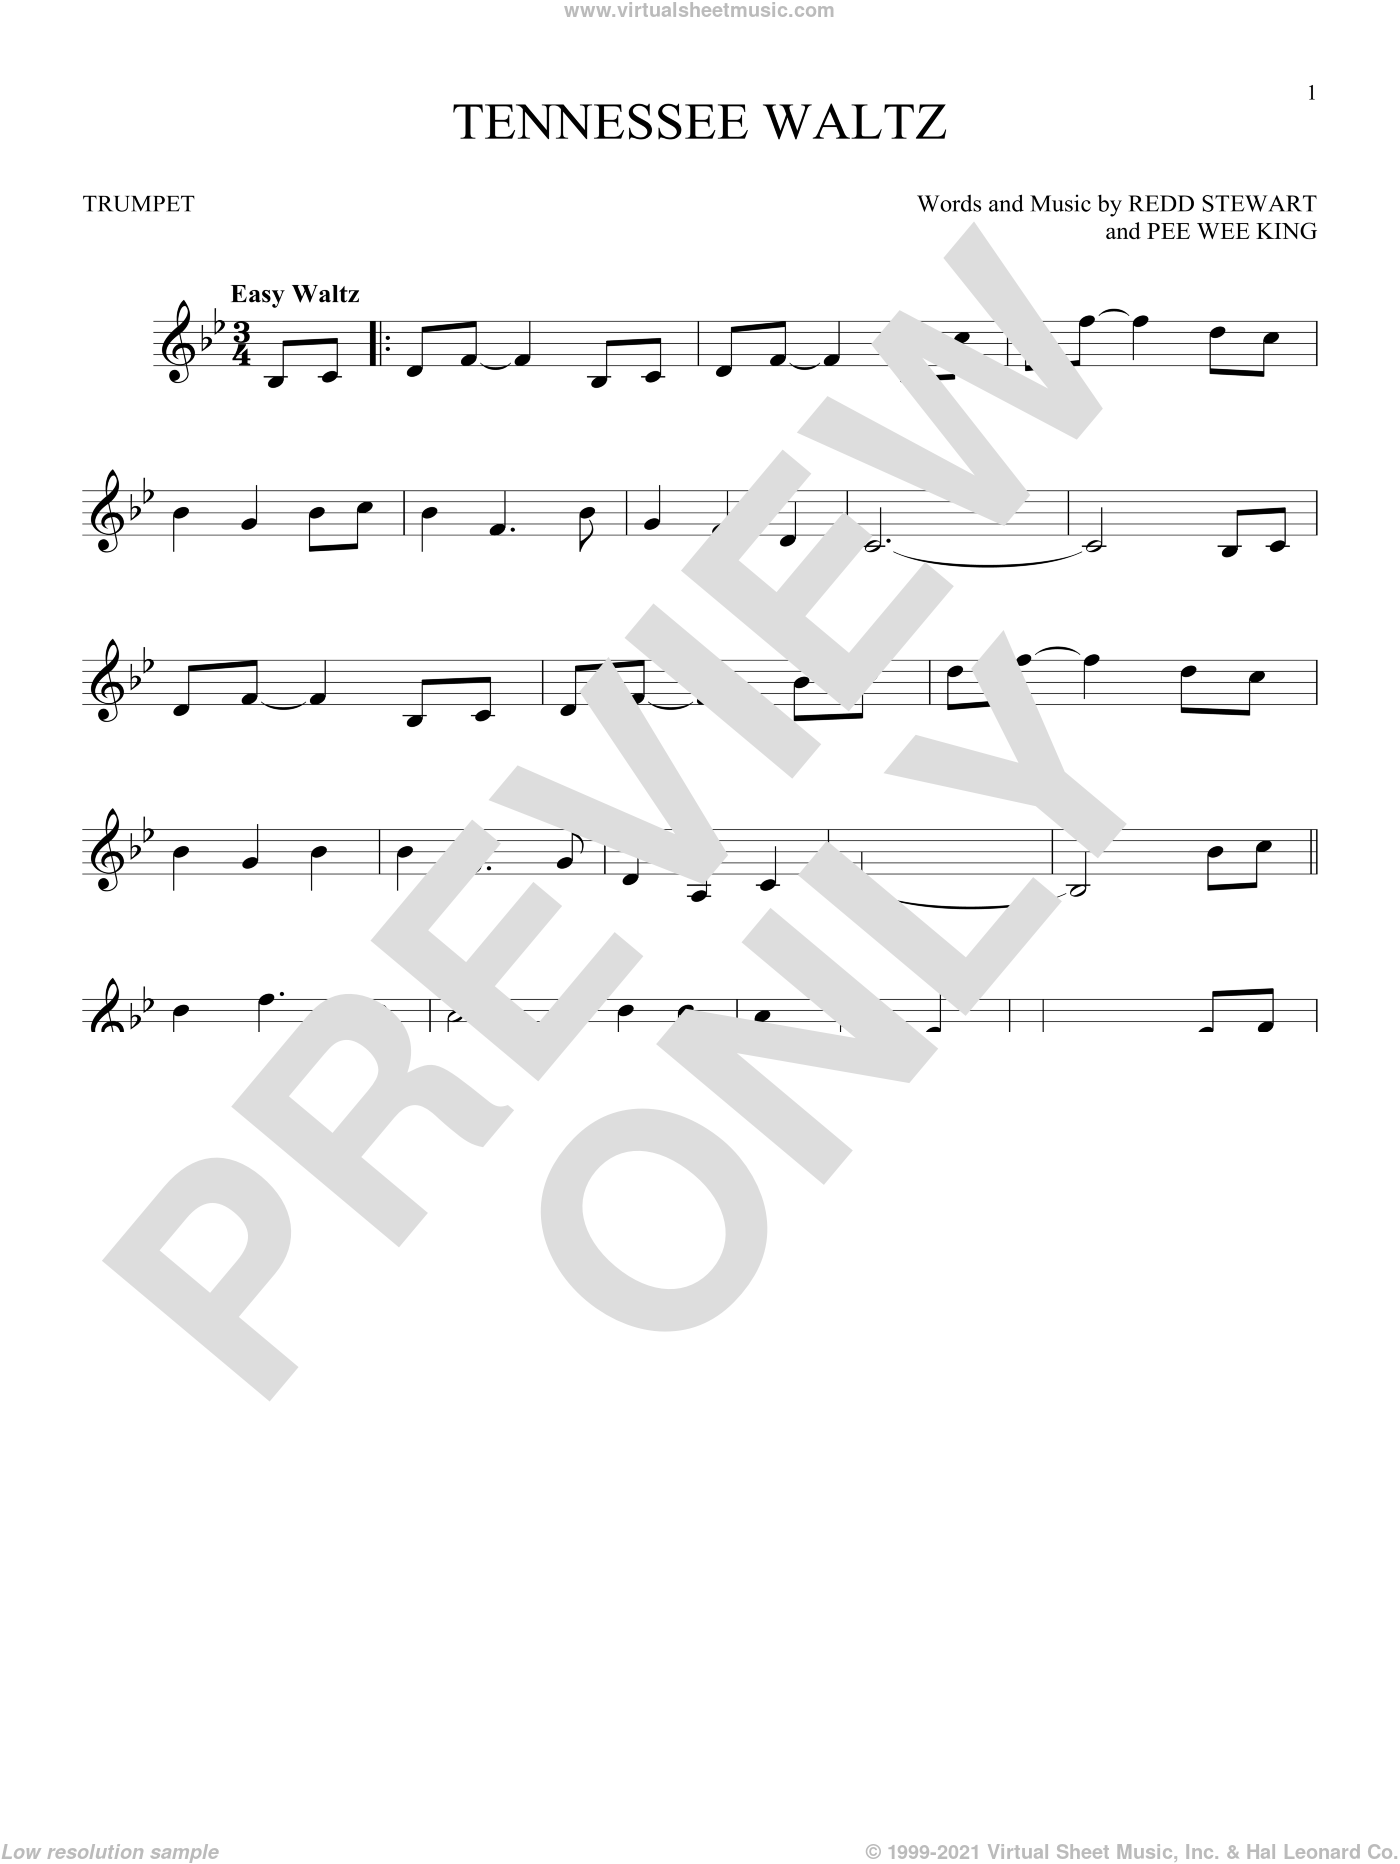 Tennessee Waltz sheet music for trumpet solo by Redd Stewart